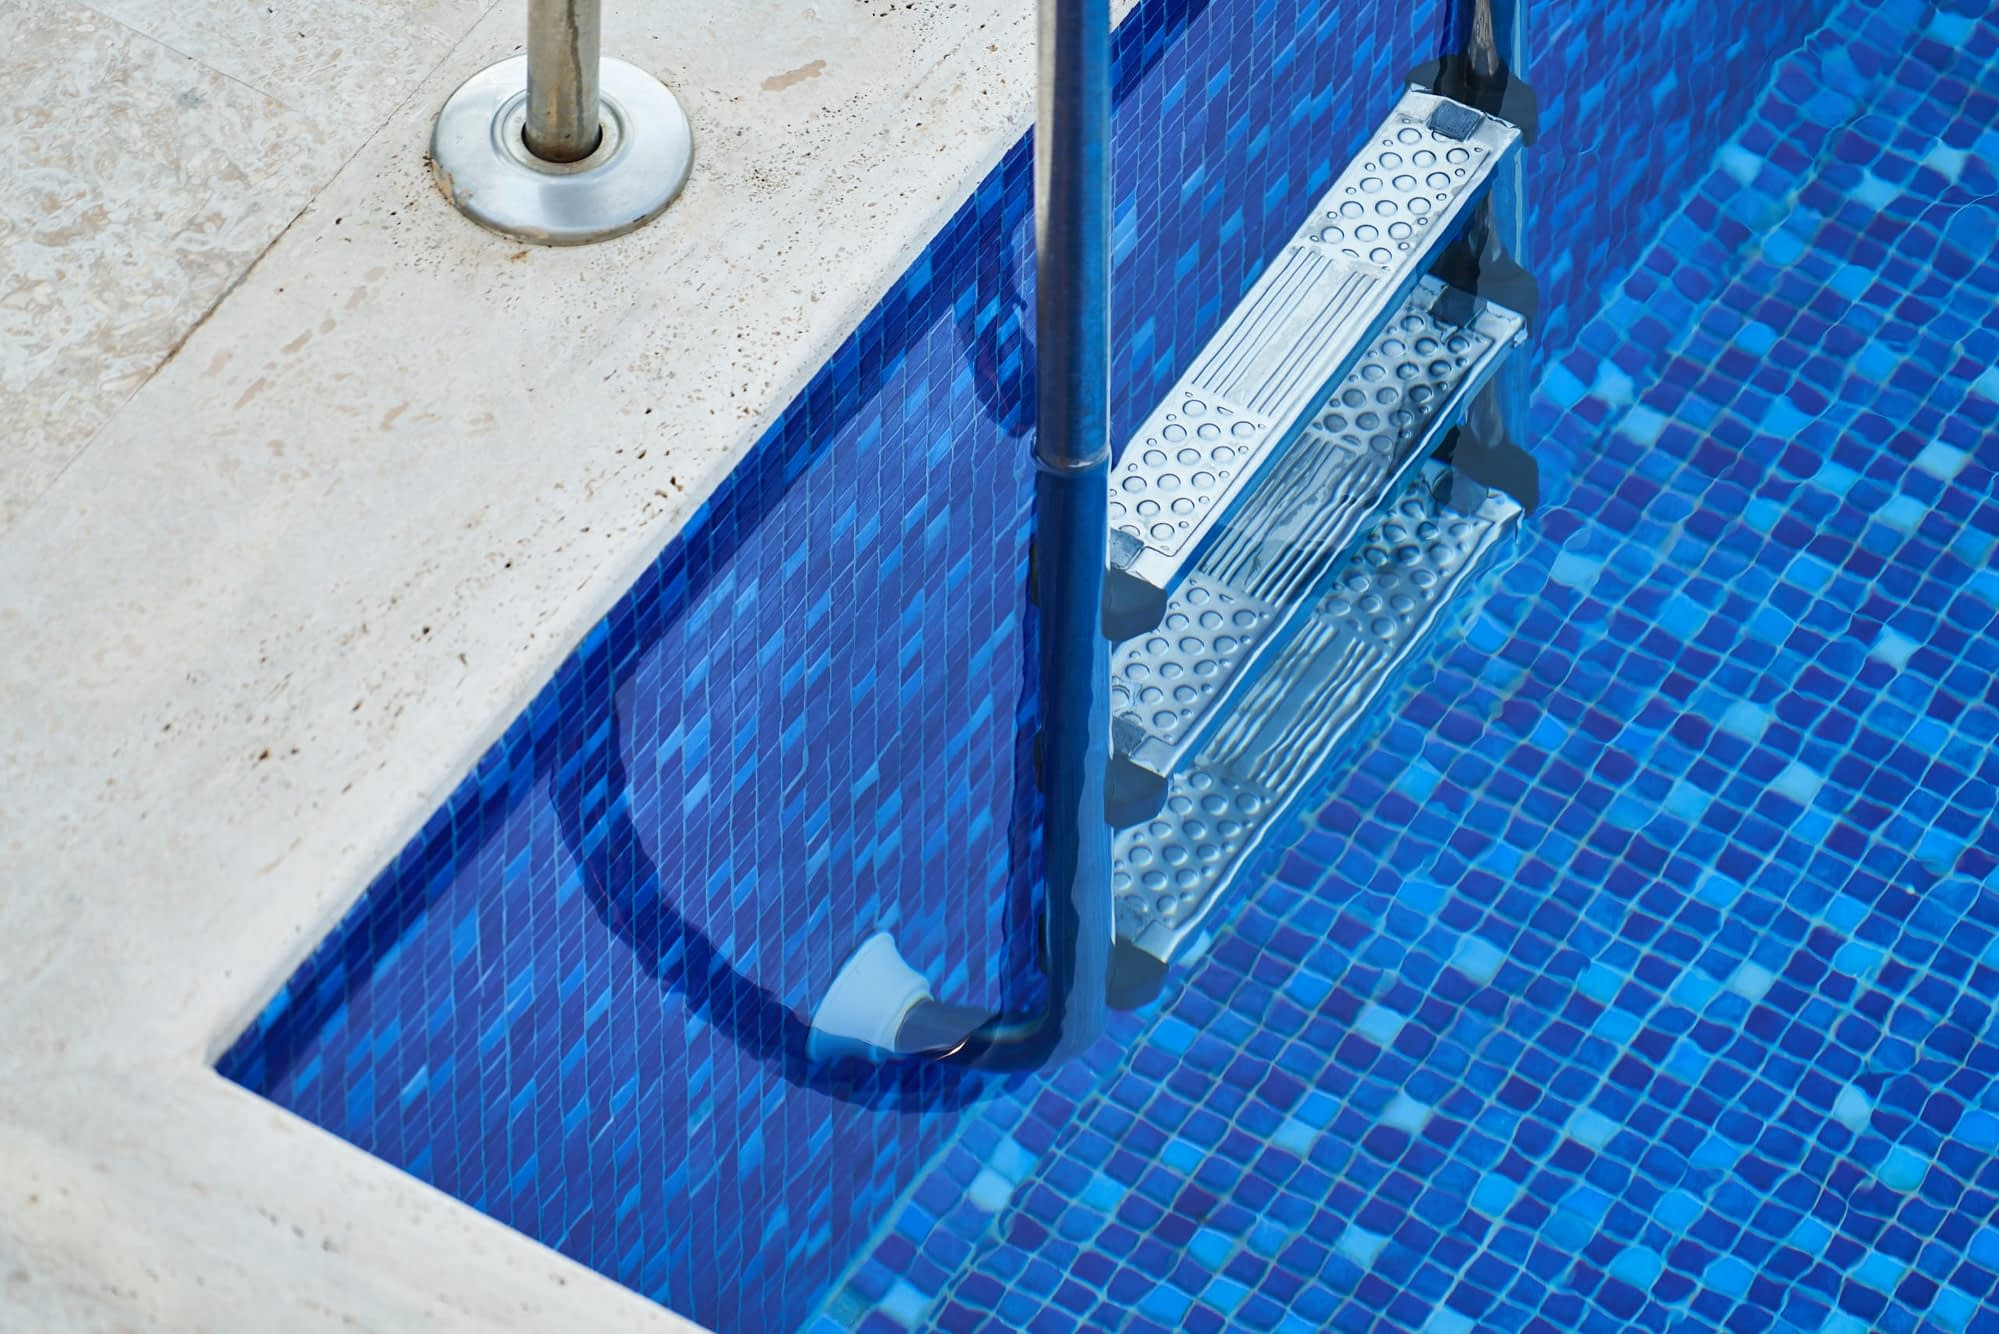 supply, deliver and install pool equipment